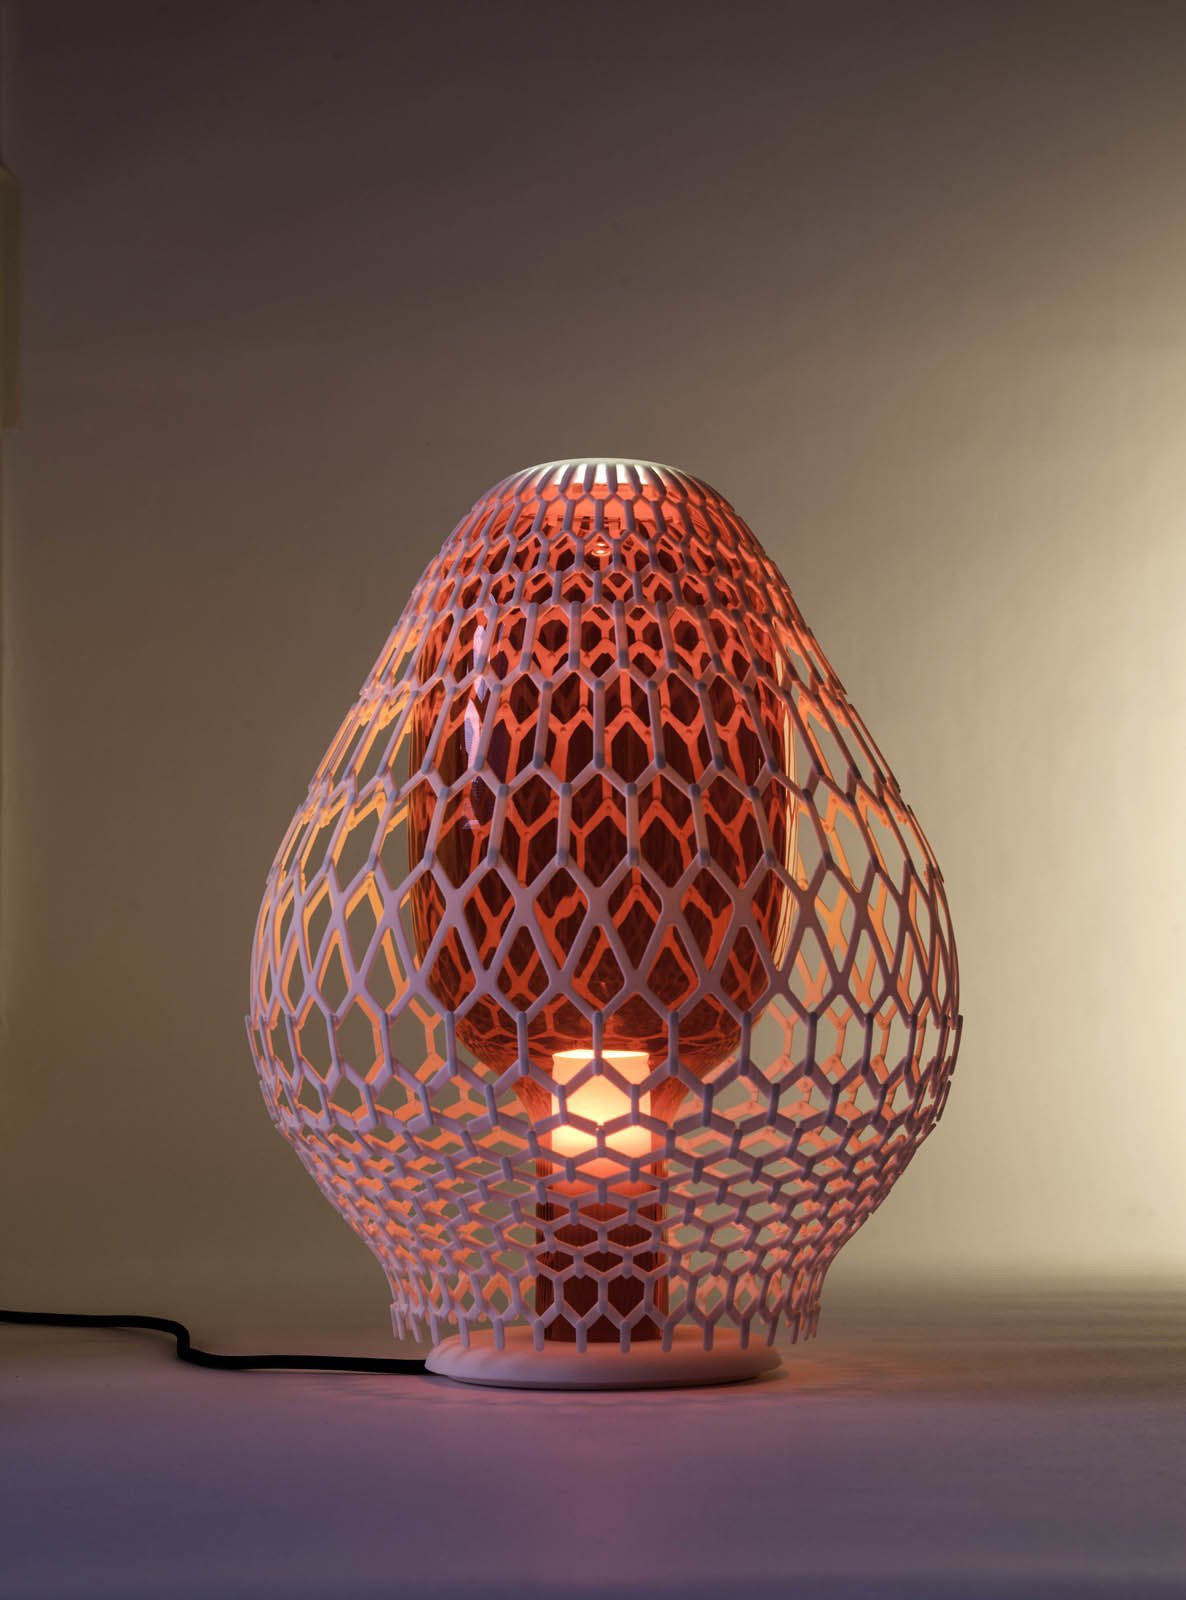 When switched on, the lamp casts a colorful glow.  3D Printed Lighting by Exnovo by Diana Budds